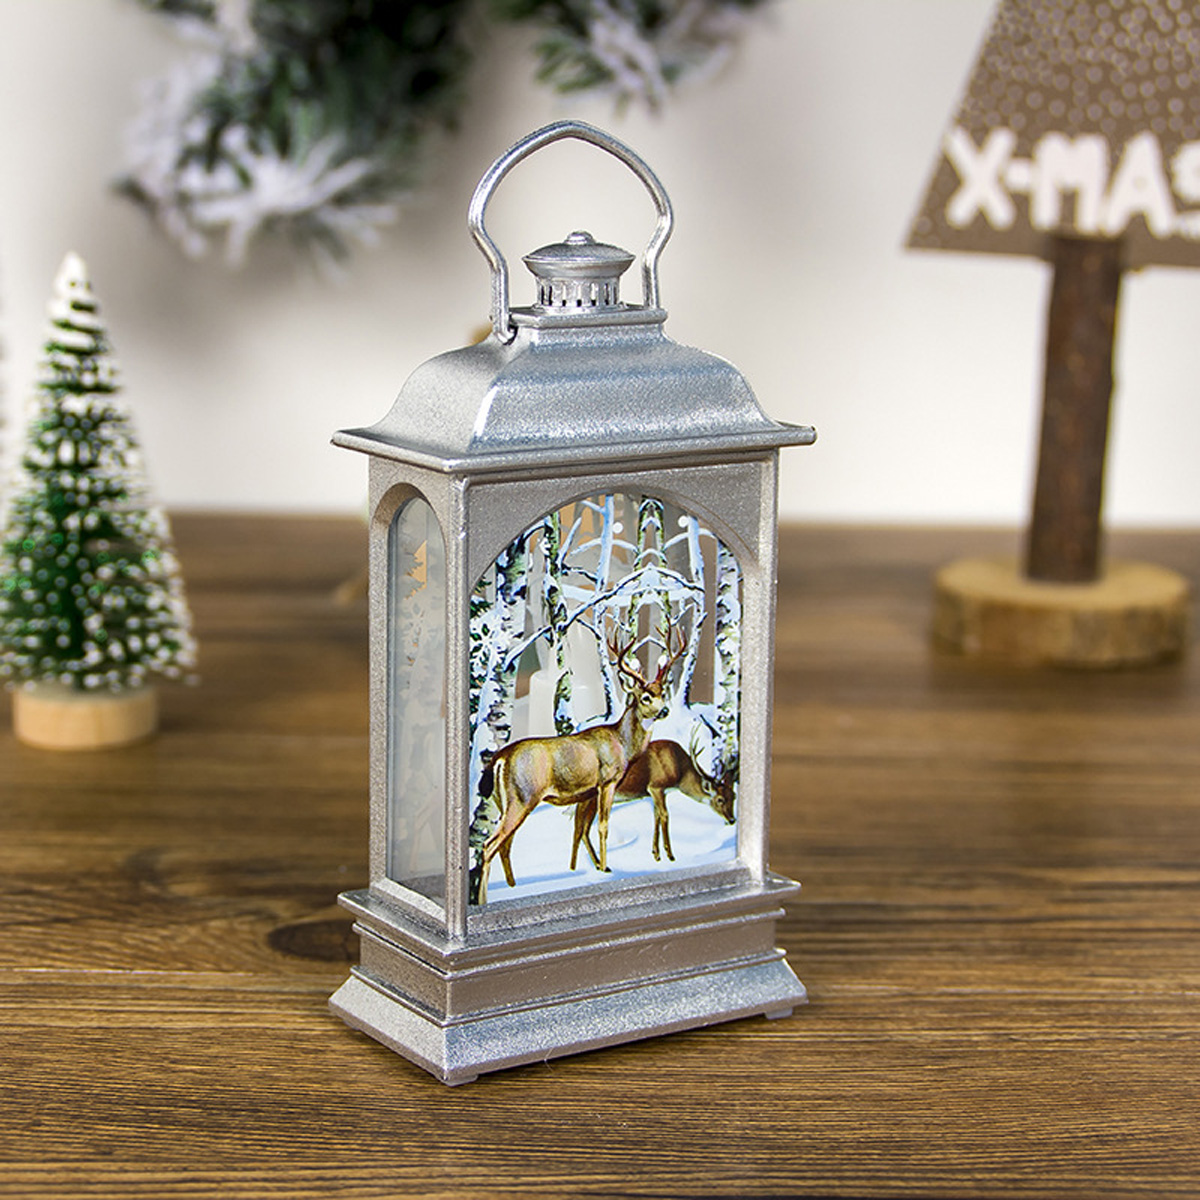 Snowman Santa Claus Religionary Deer LED Christmas Tree Hanging Lantern Lamp Night Light Party Decorative